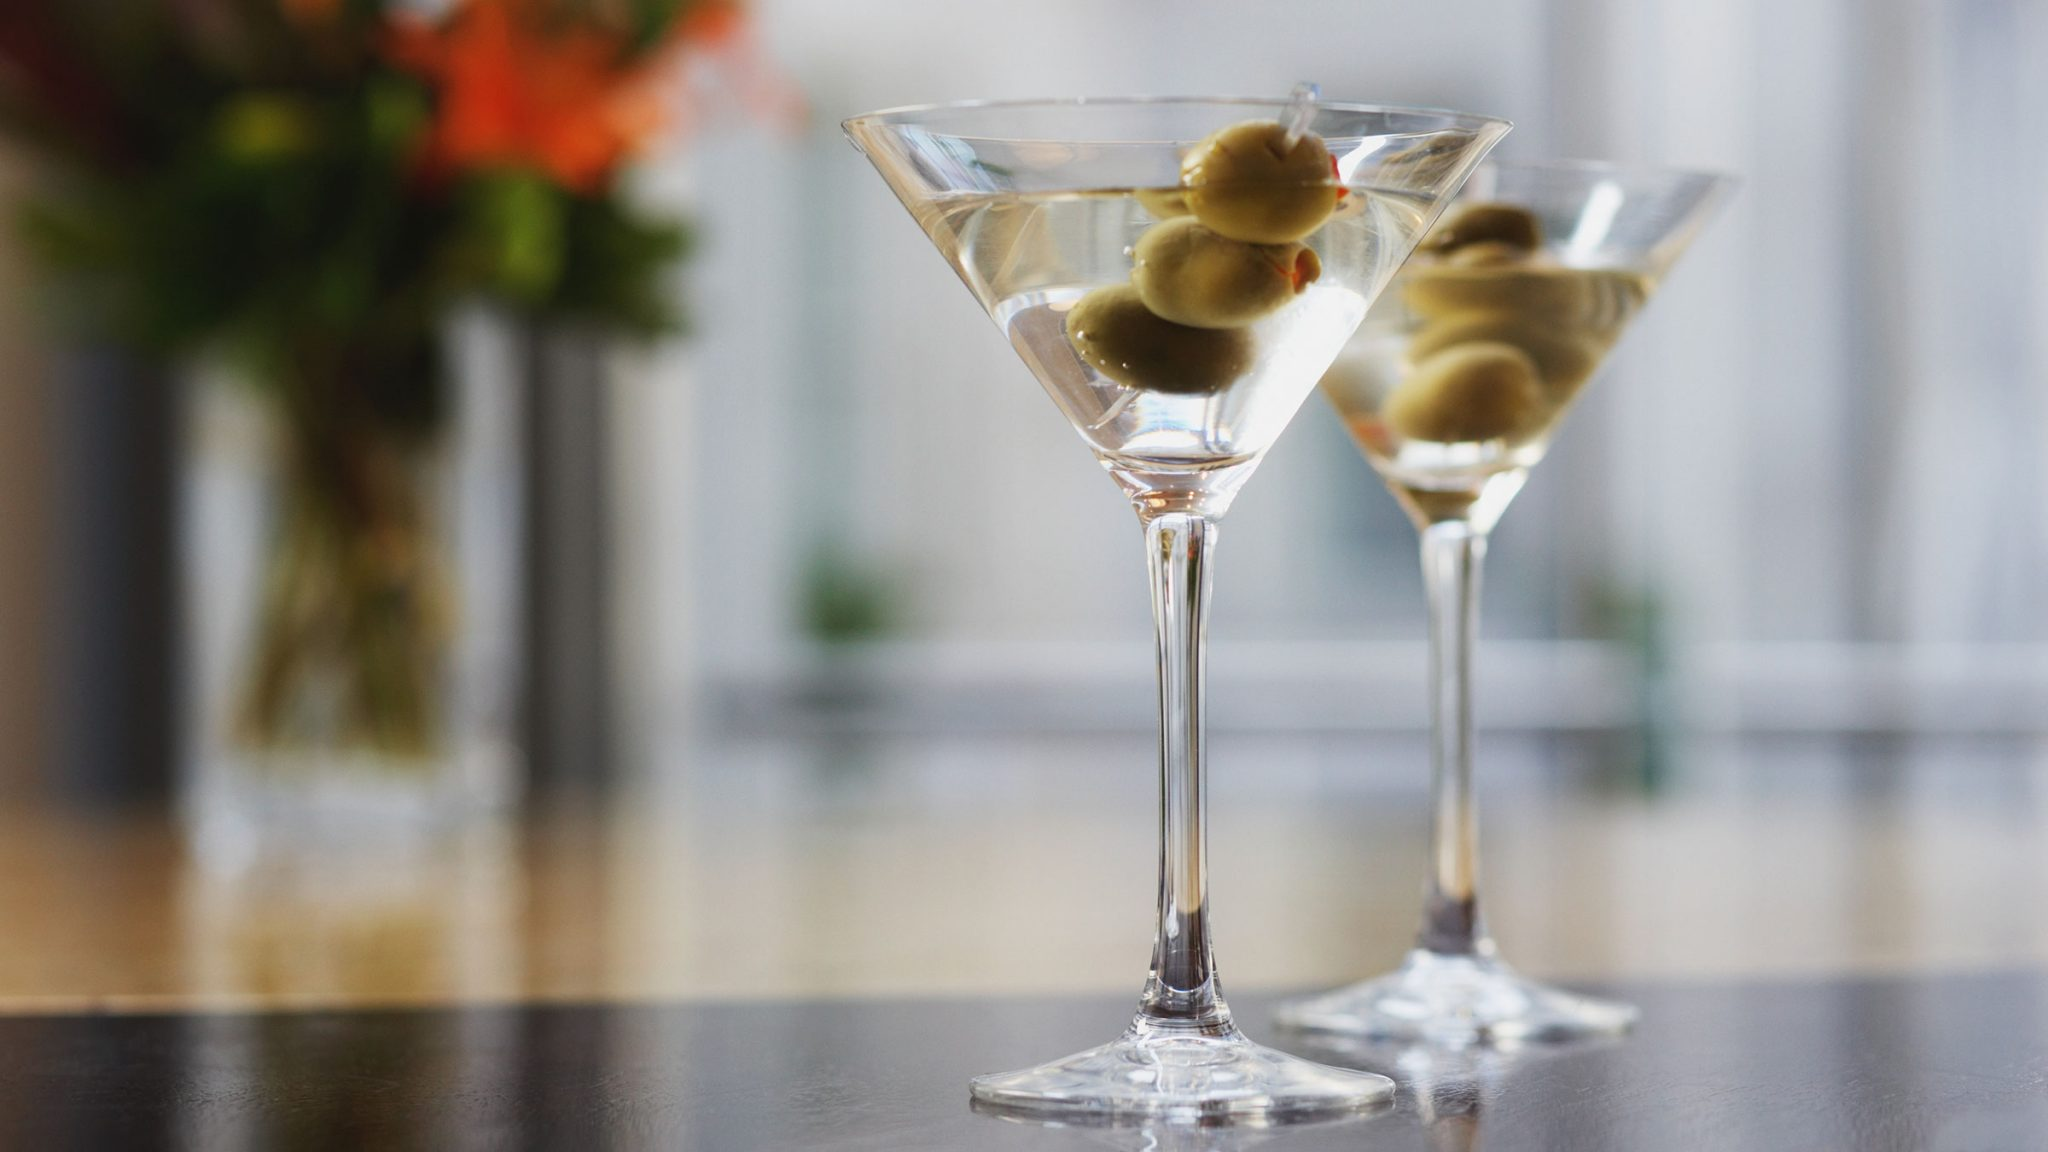 Classic martinis served at Le Bar at Four Seasons Hotel George V, Paris